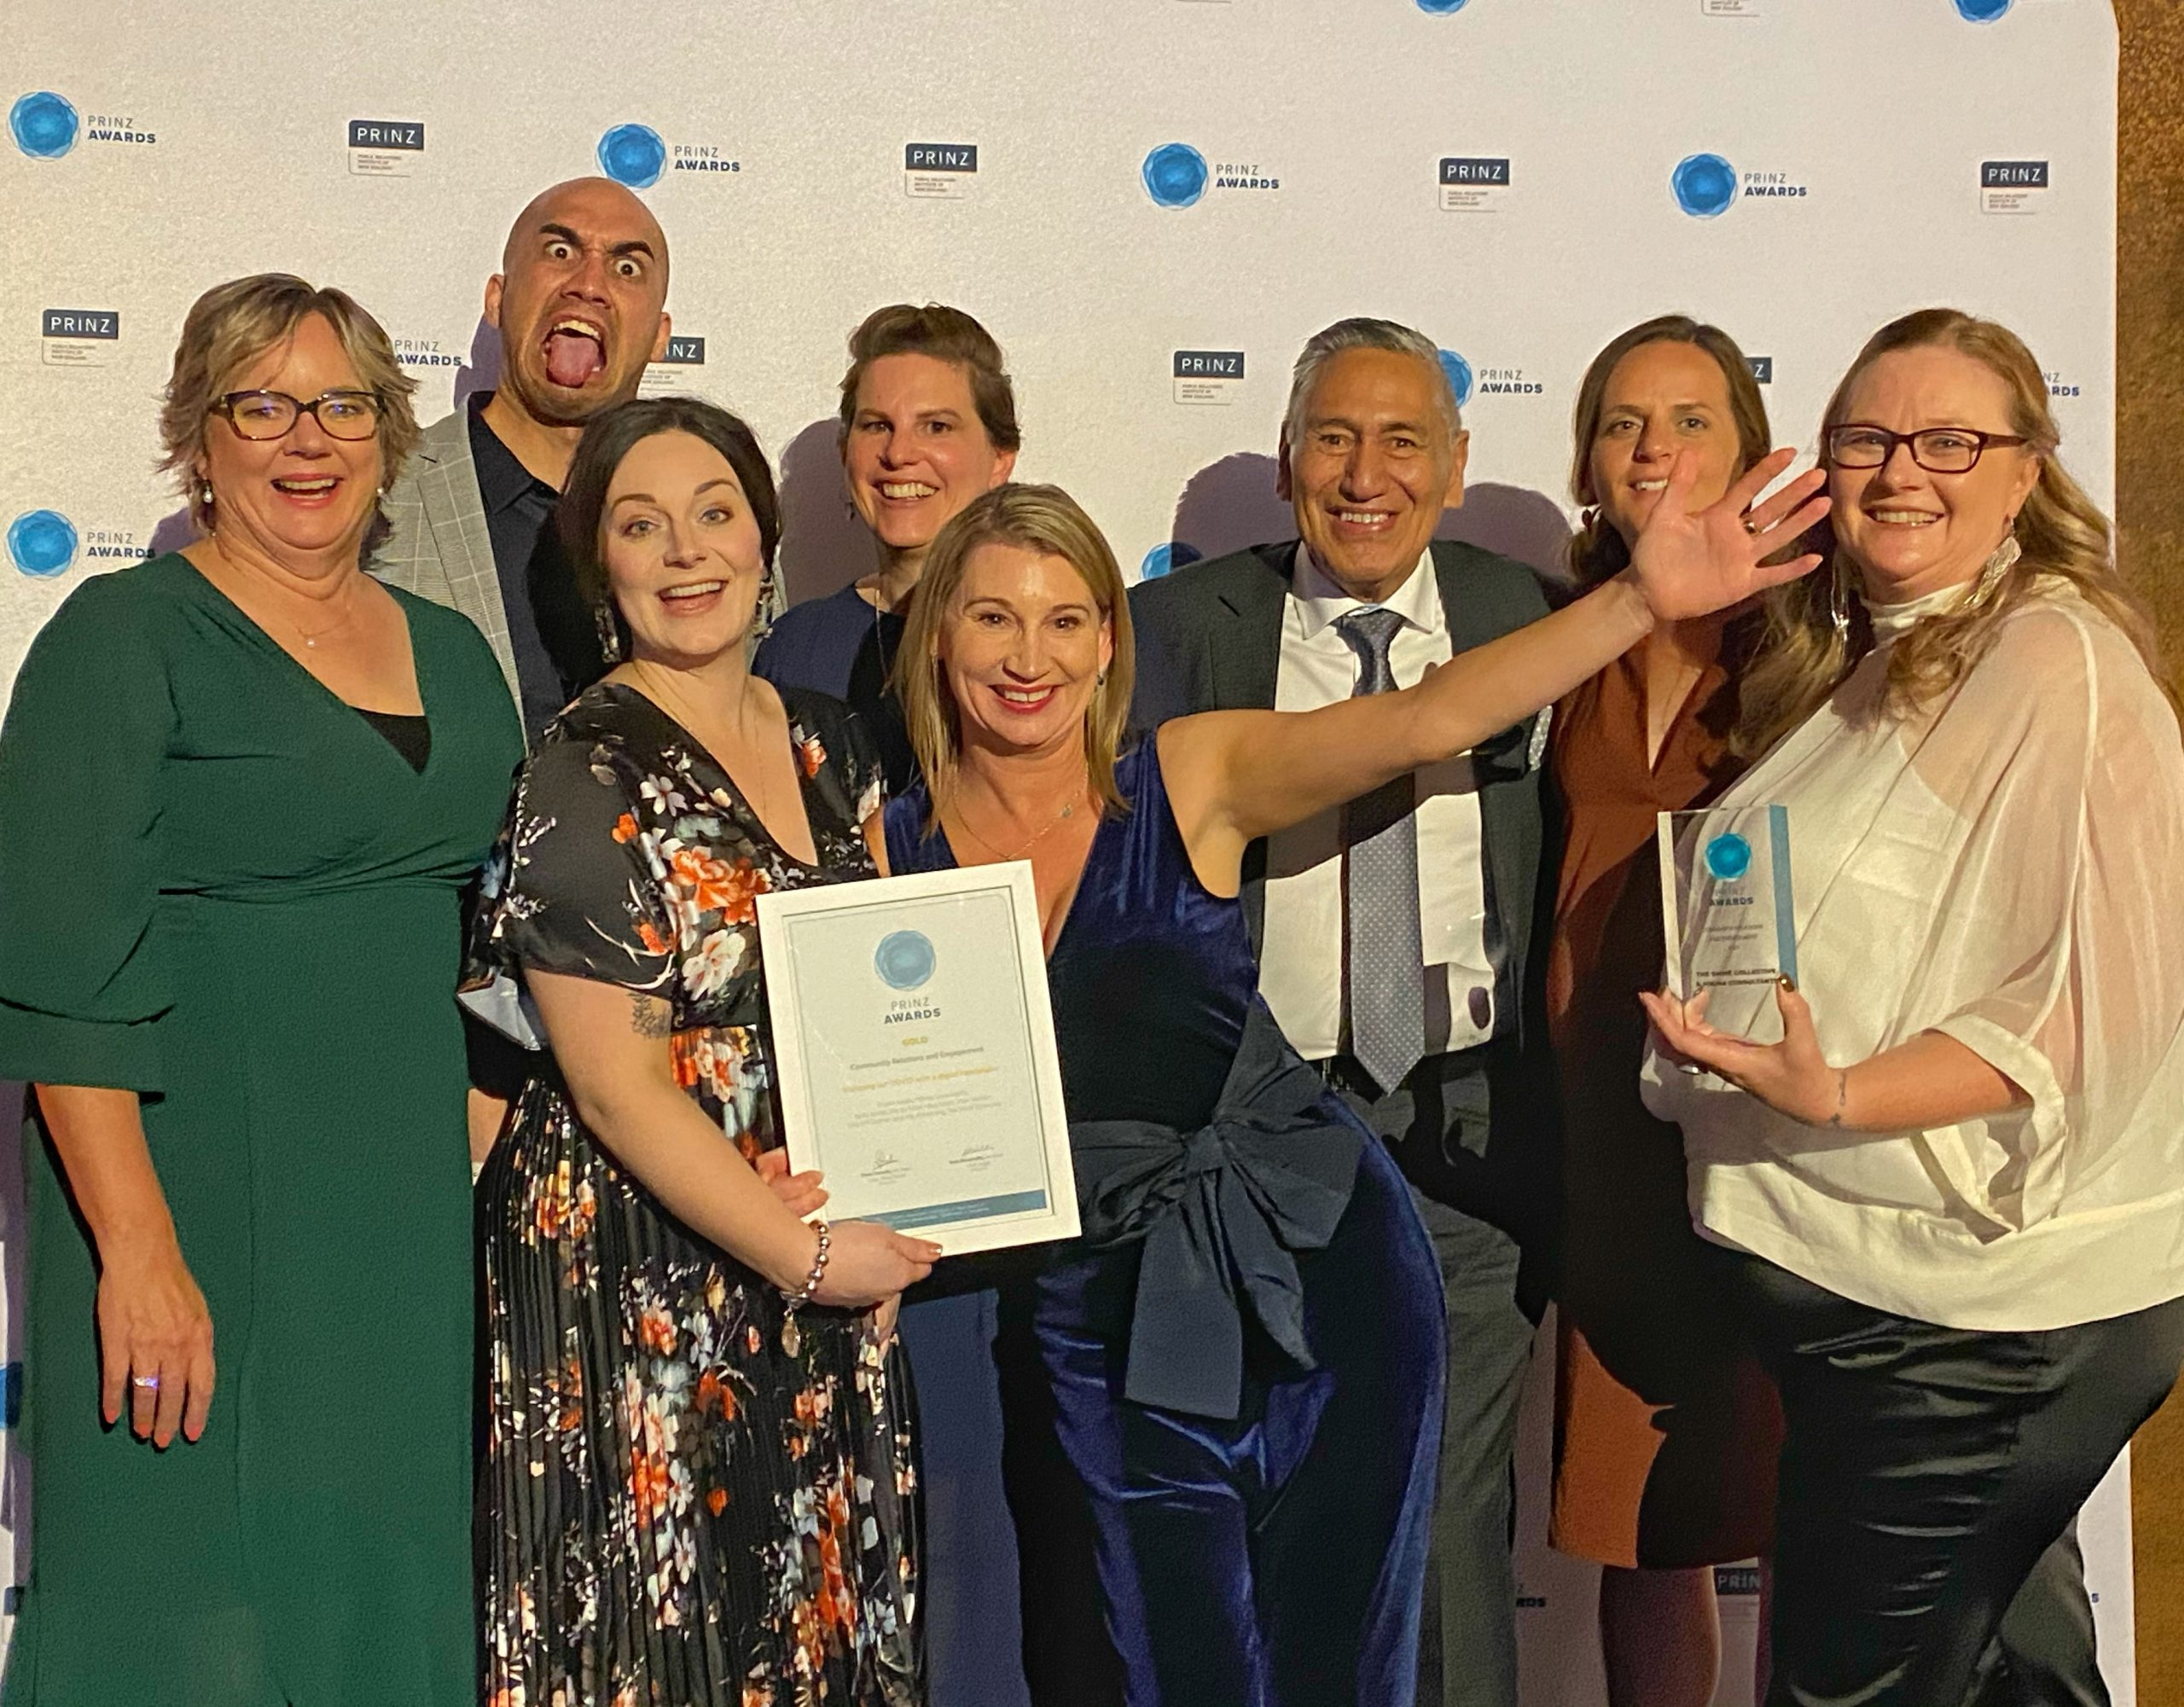 The team from Shine Collective with their award at the PRINZ Awards.